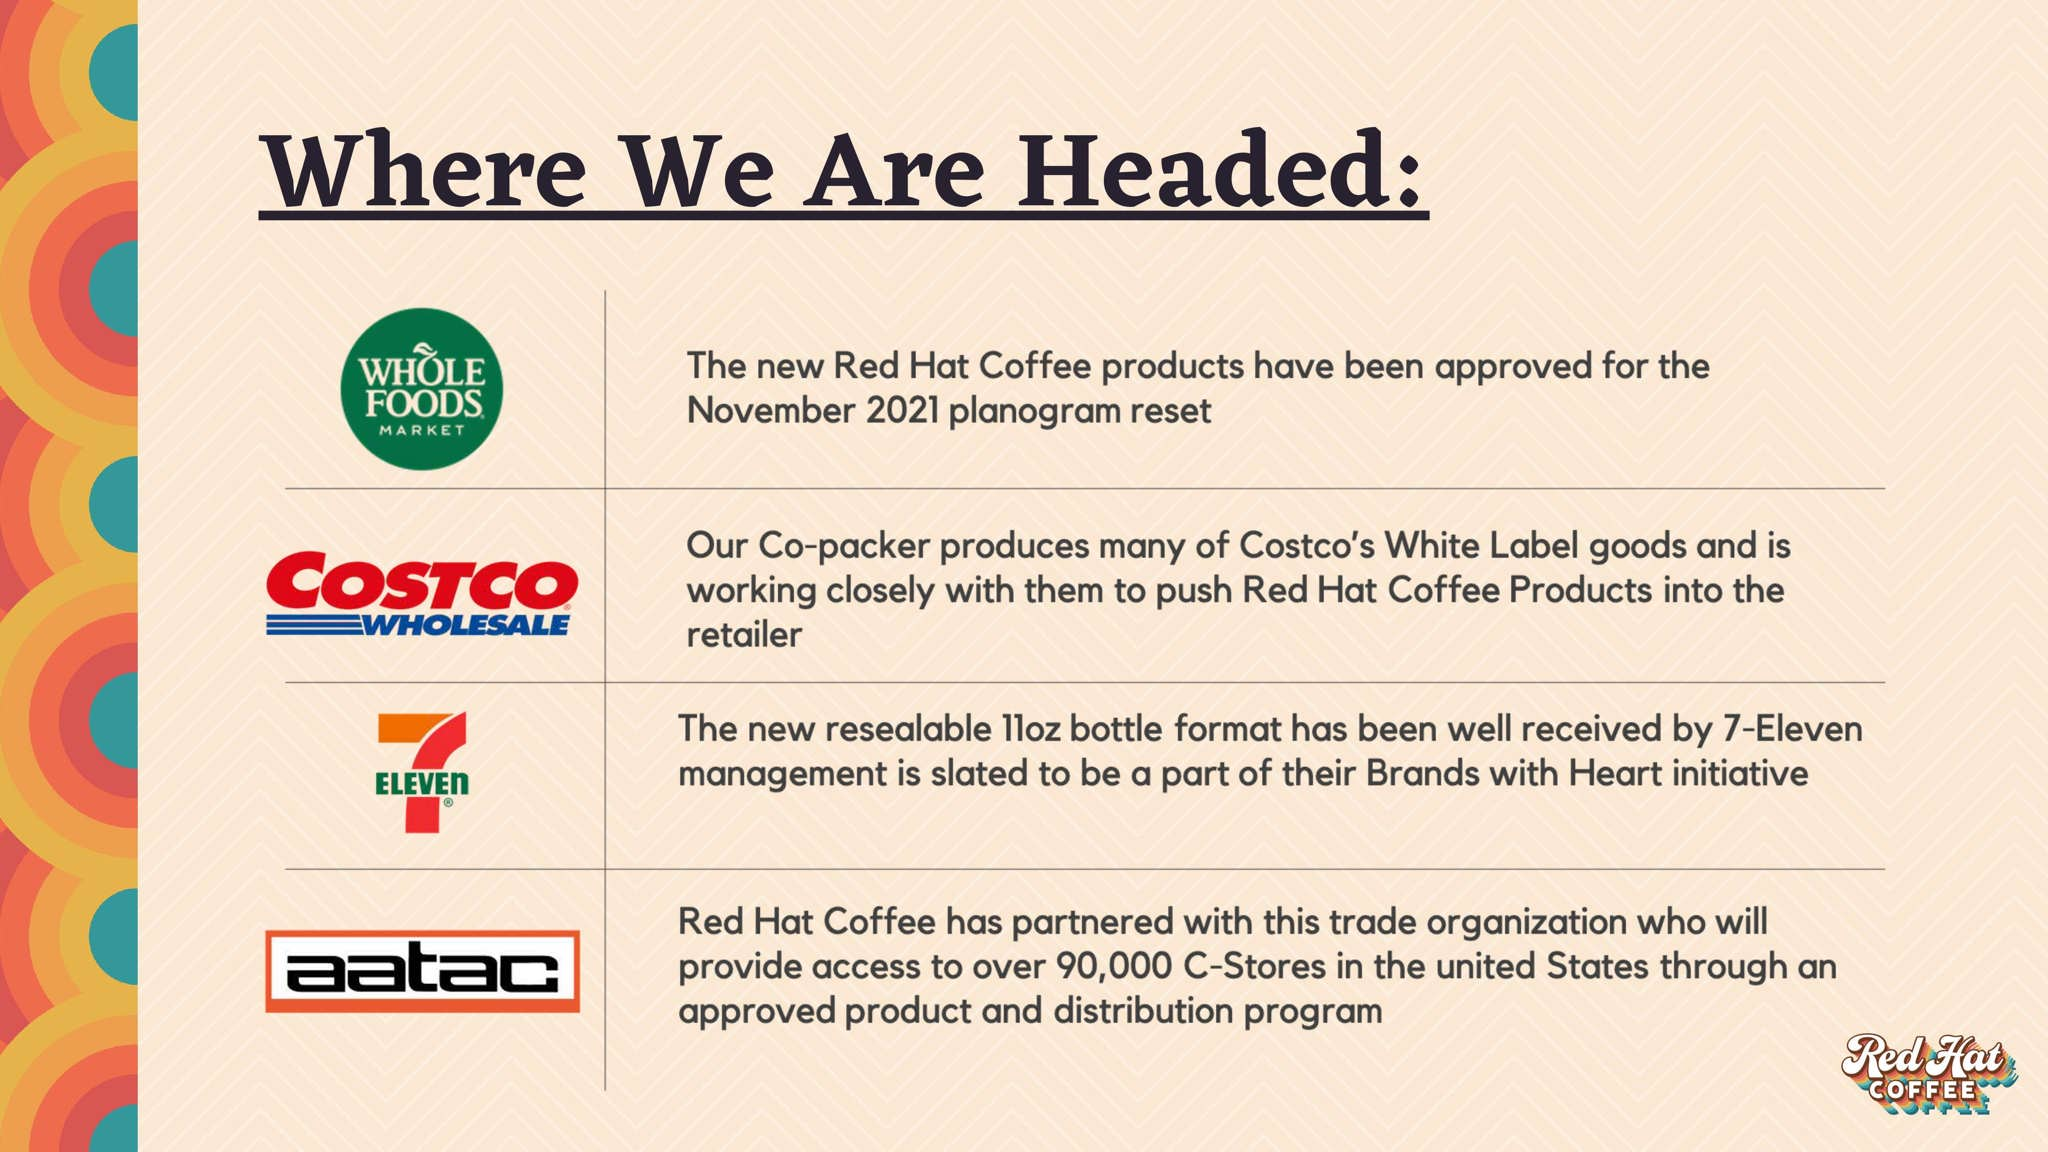 We are headed to Whole Foods, Costco, 7-Elevon and AATAC through current and new relationships and approval of our oat milk lattes.